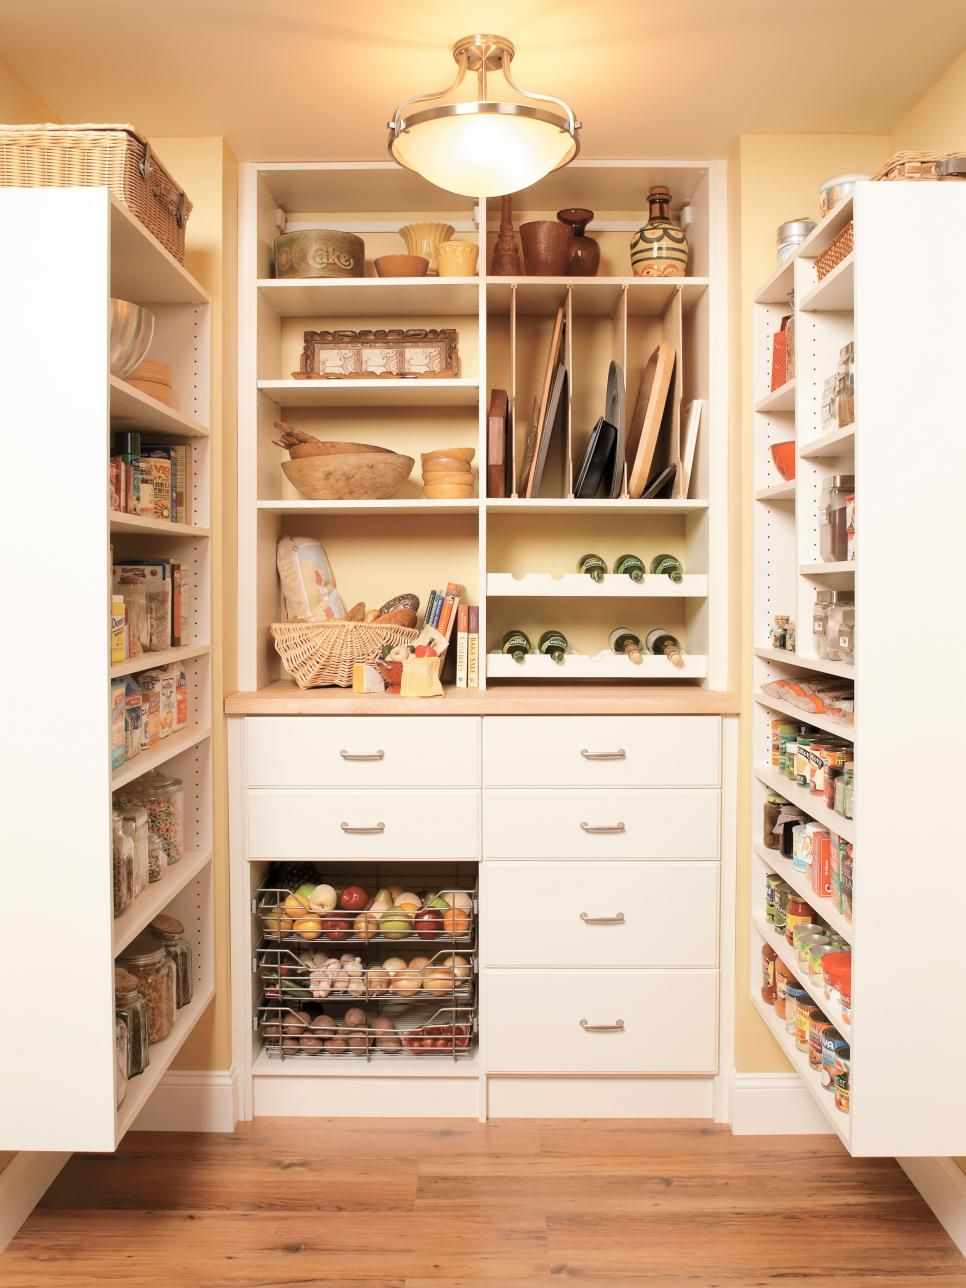 Organization And Design Ideas For Storage In The Kitchen Pantry - How to add a pantry to your kitchen